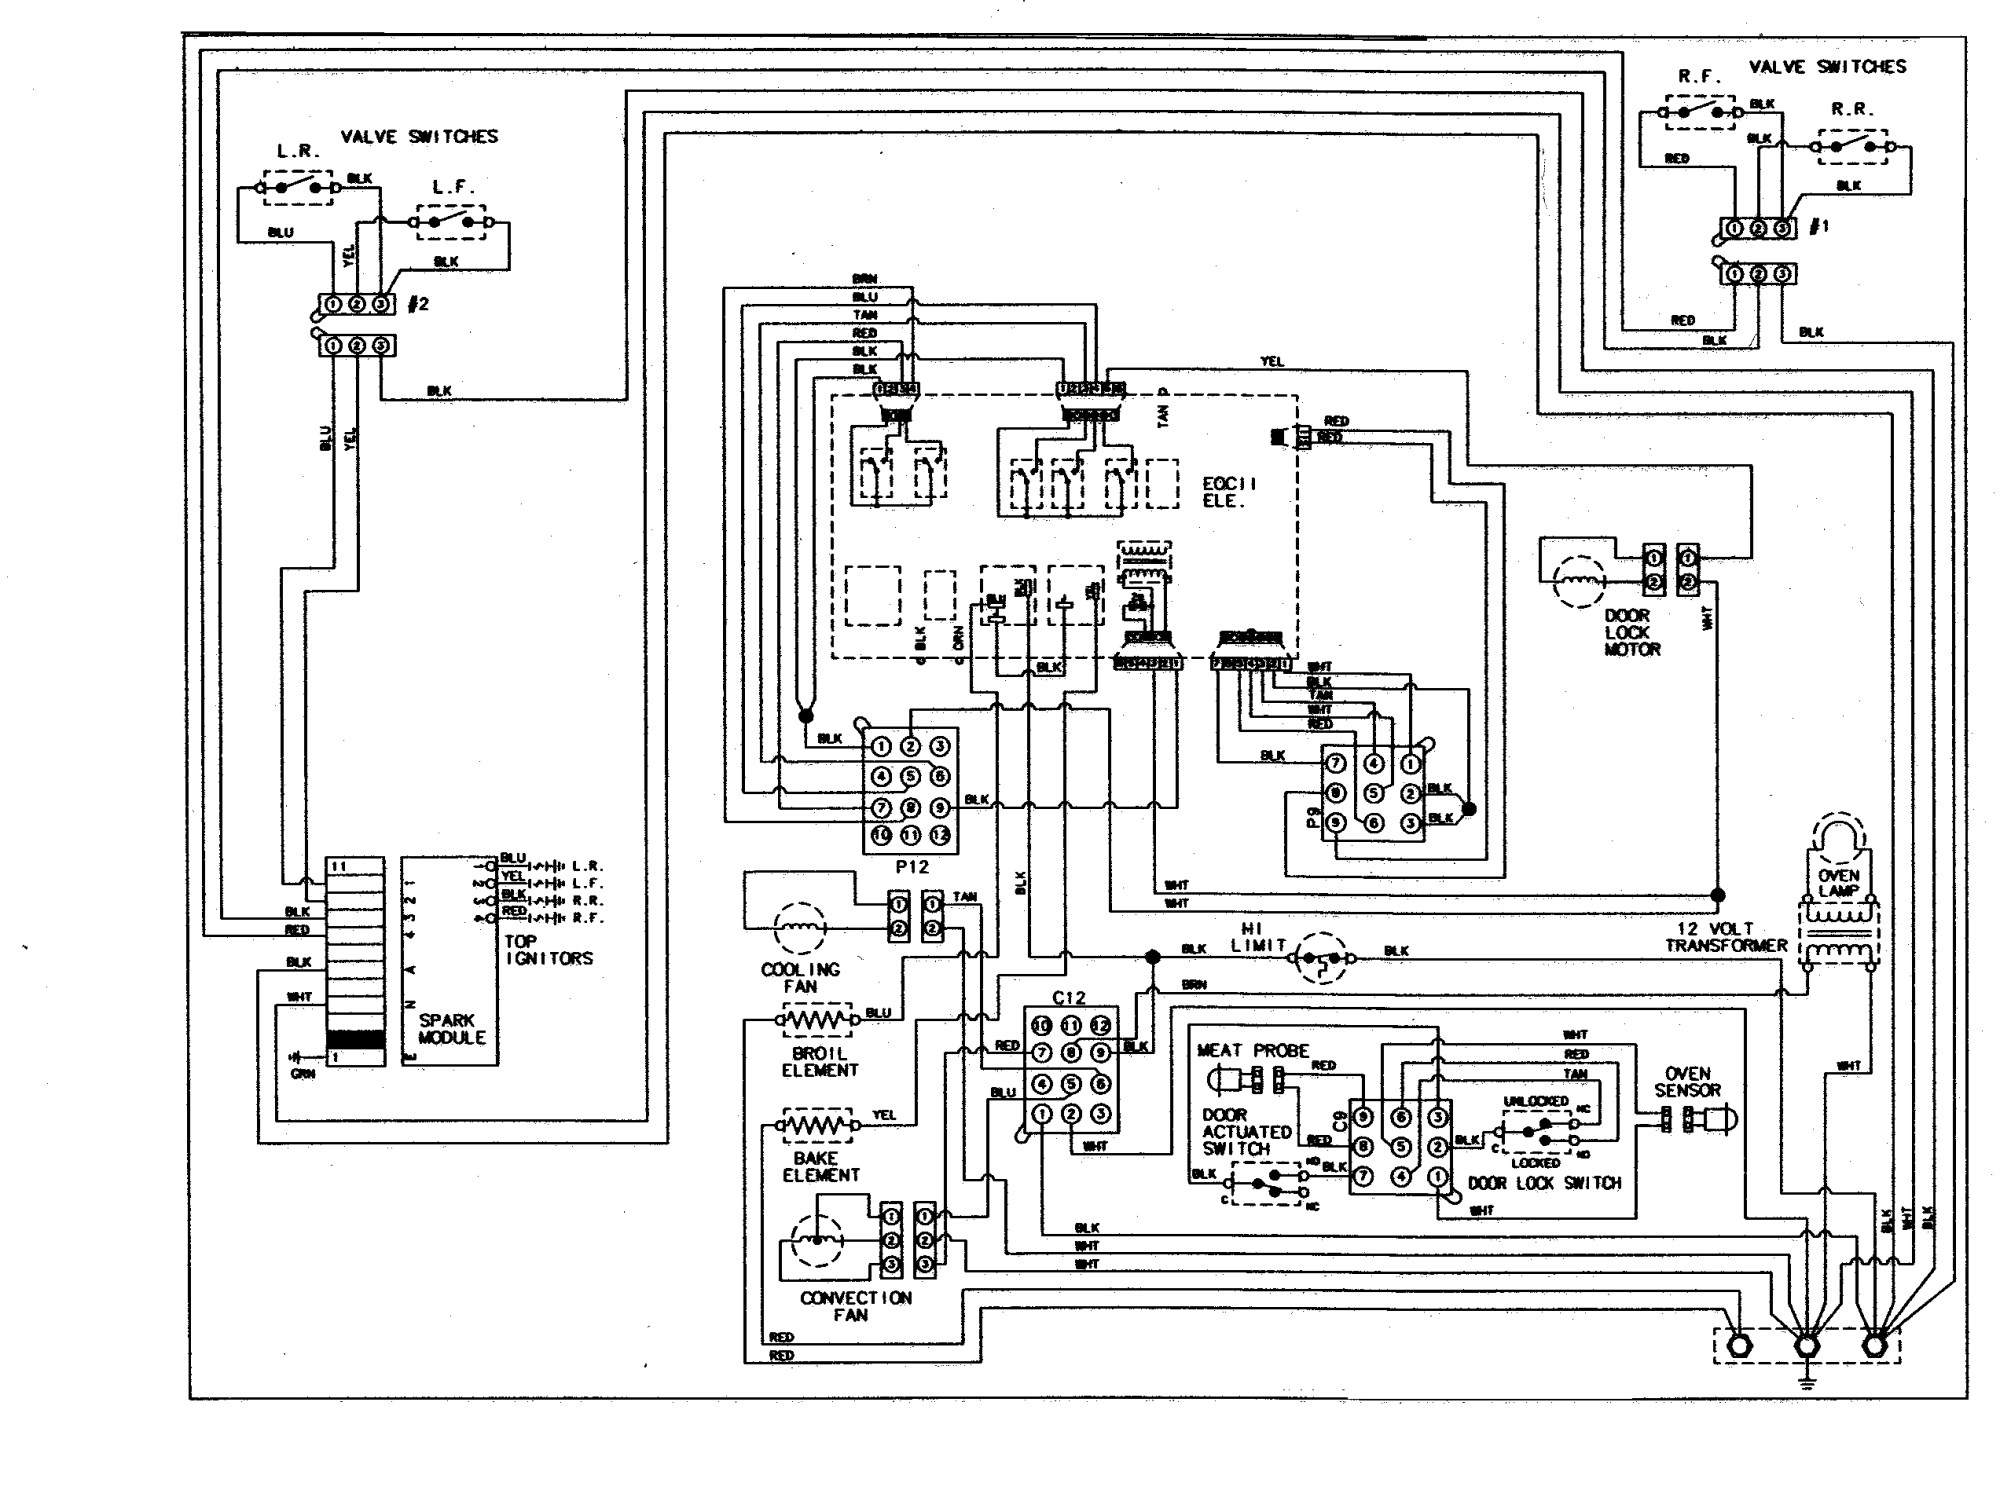 hight resolution of hight resolution of ge stove diagram wiring diagram yes ge profile convection oven wiring diagram ge